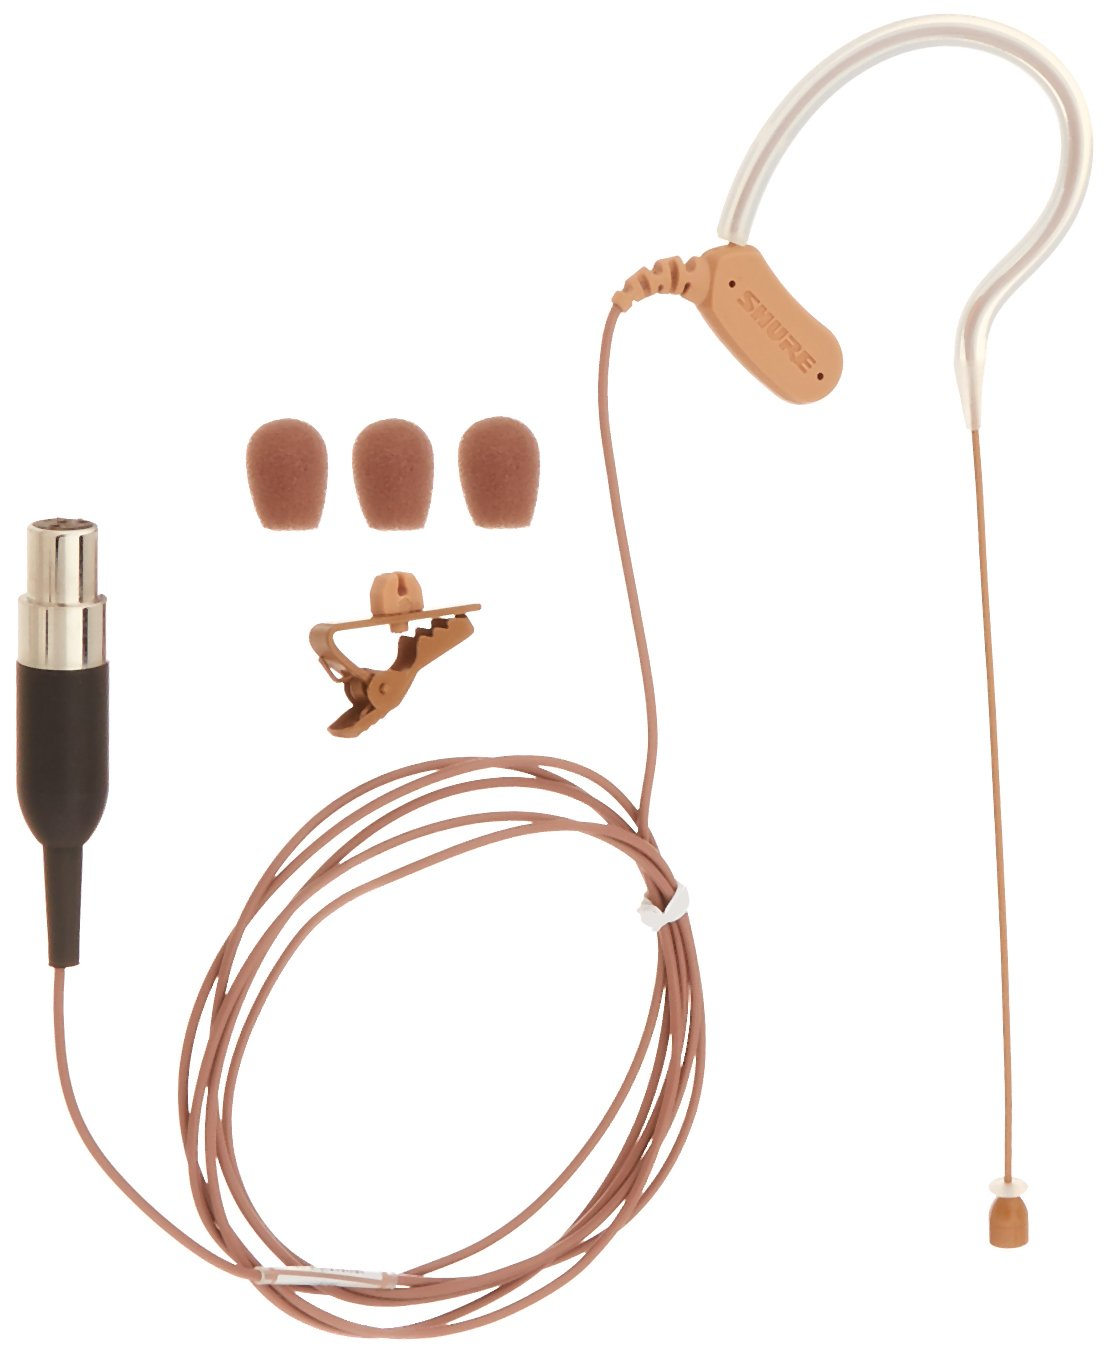 Shure MX153C/O-TQG Omnidirectional Earset Headworn Microphone, Cocoa by Shure